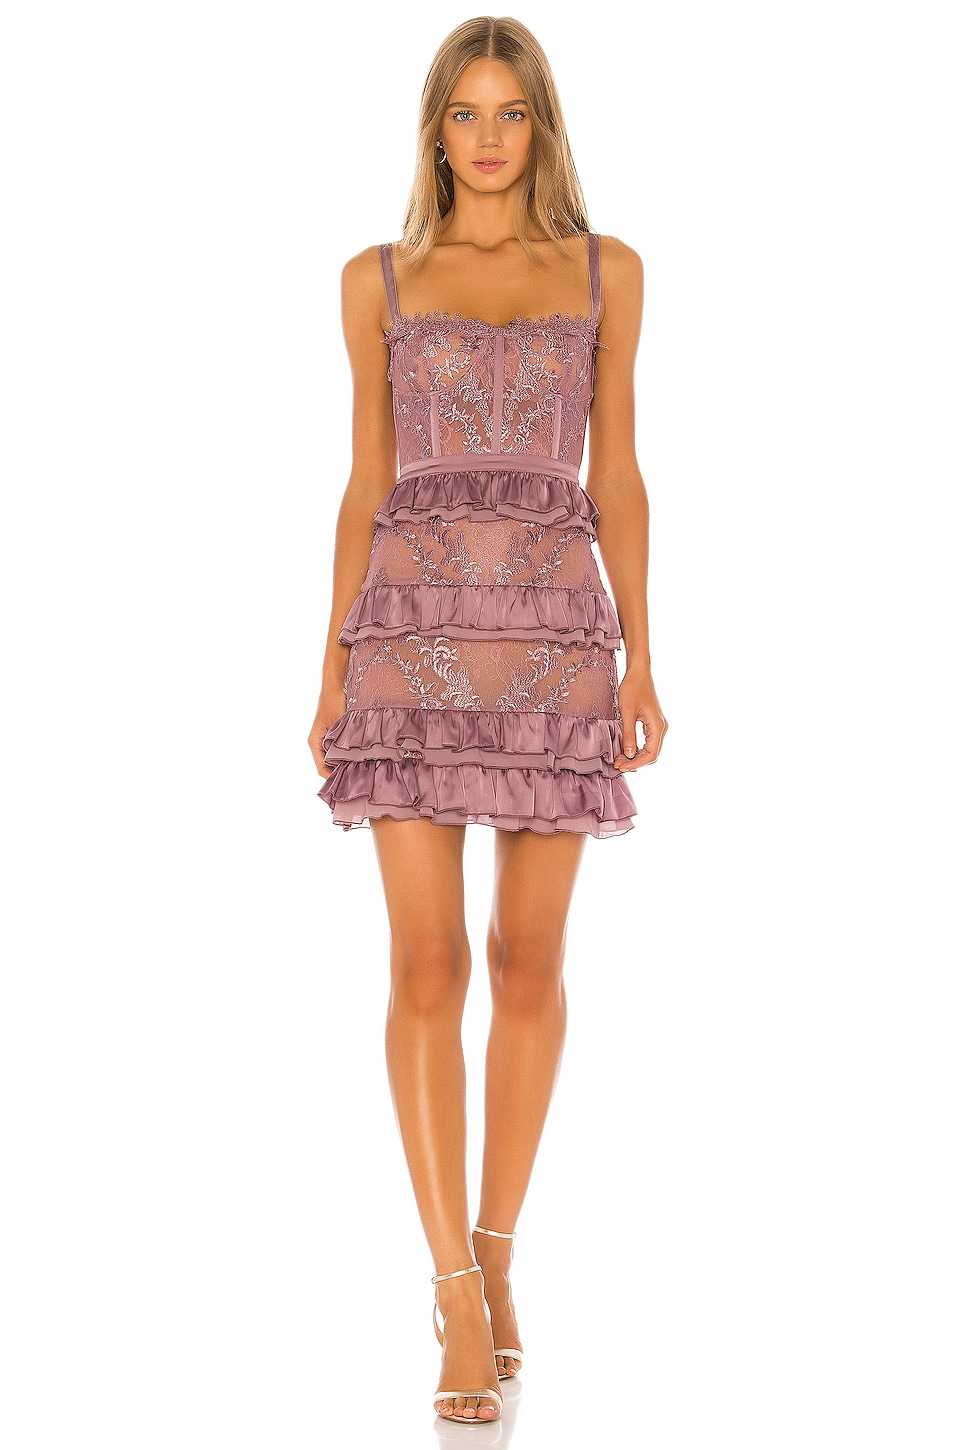 V. Chapman Peony Dress in Elderberry